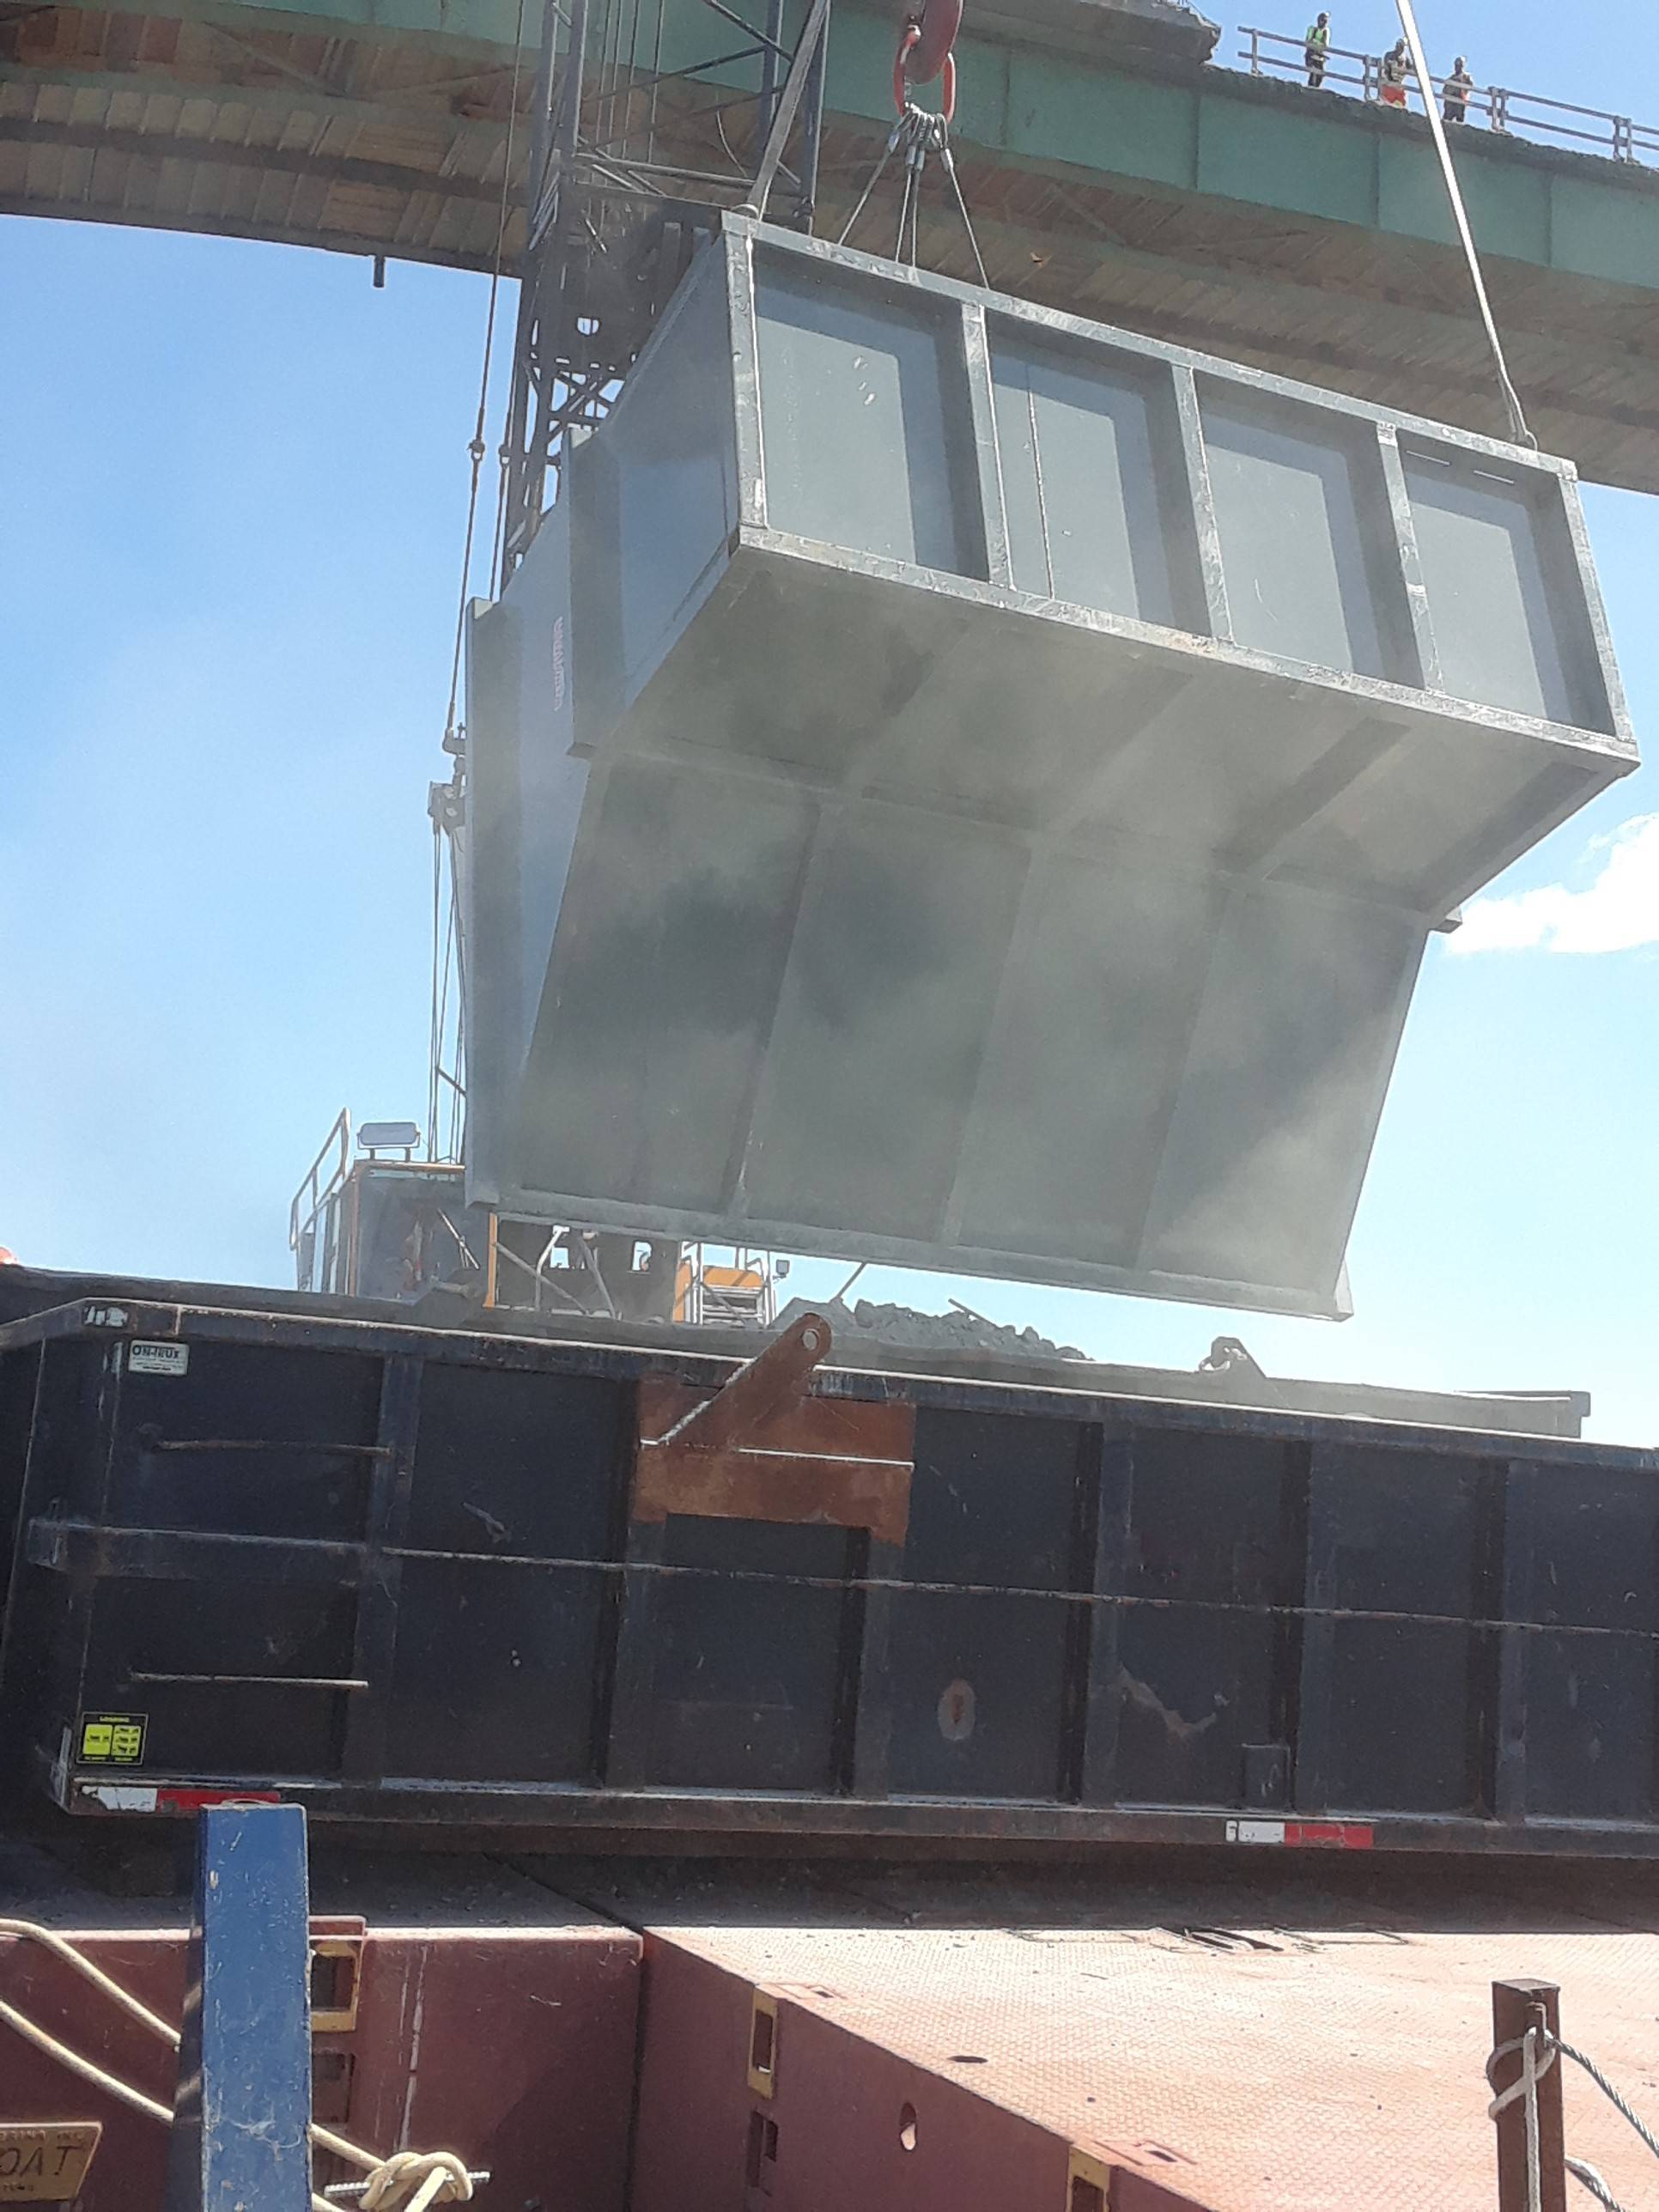 Barrier wall ruble being dumped into bins on the barge for removal